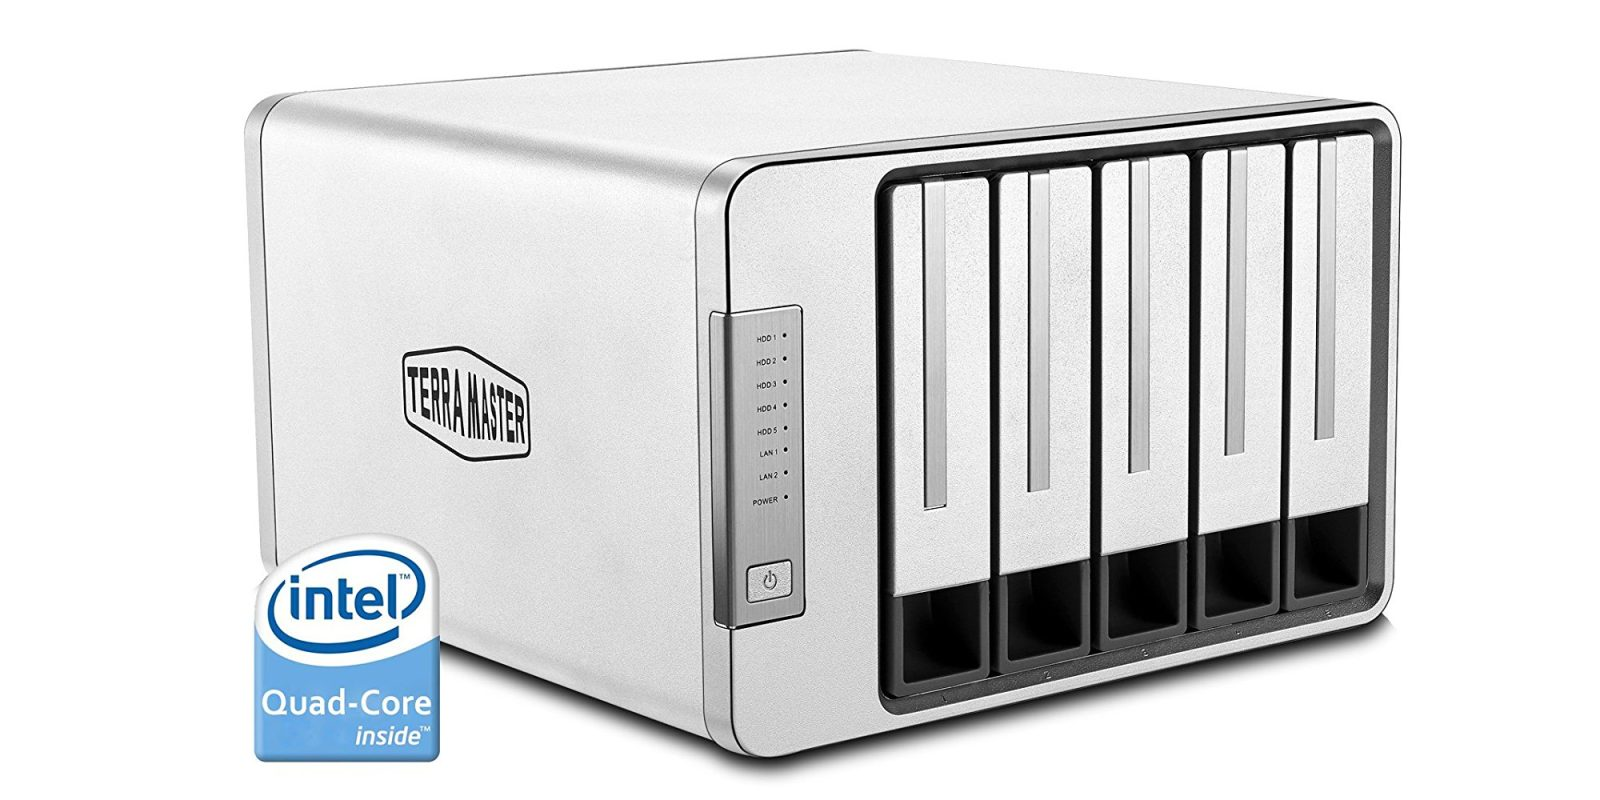 Terramaster's 5-Bay NAS works w/ Plex & supports up to 60TB of storage: $400 ($150 off)